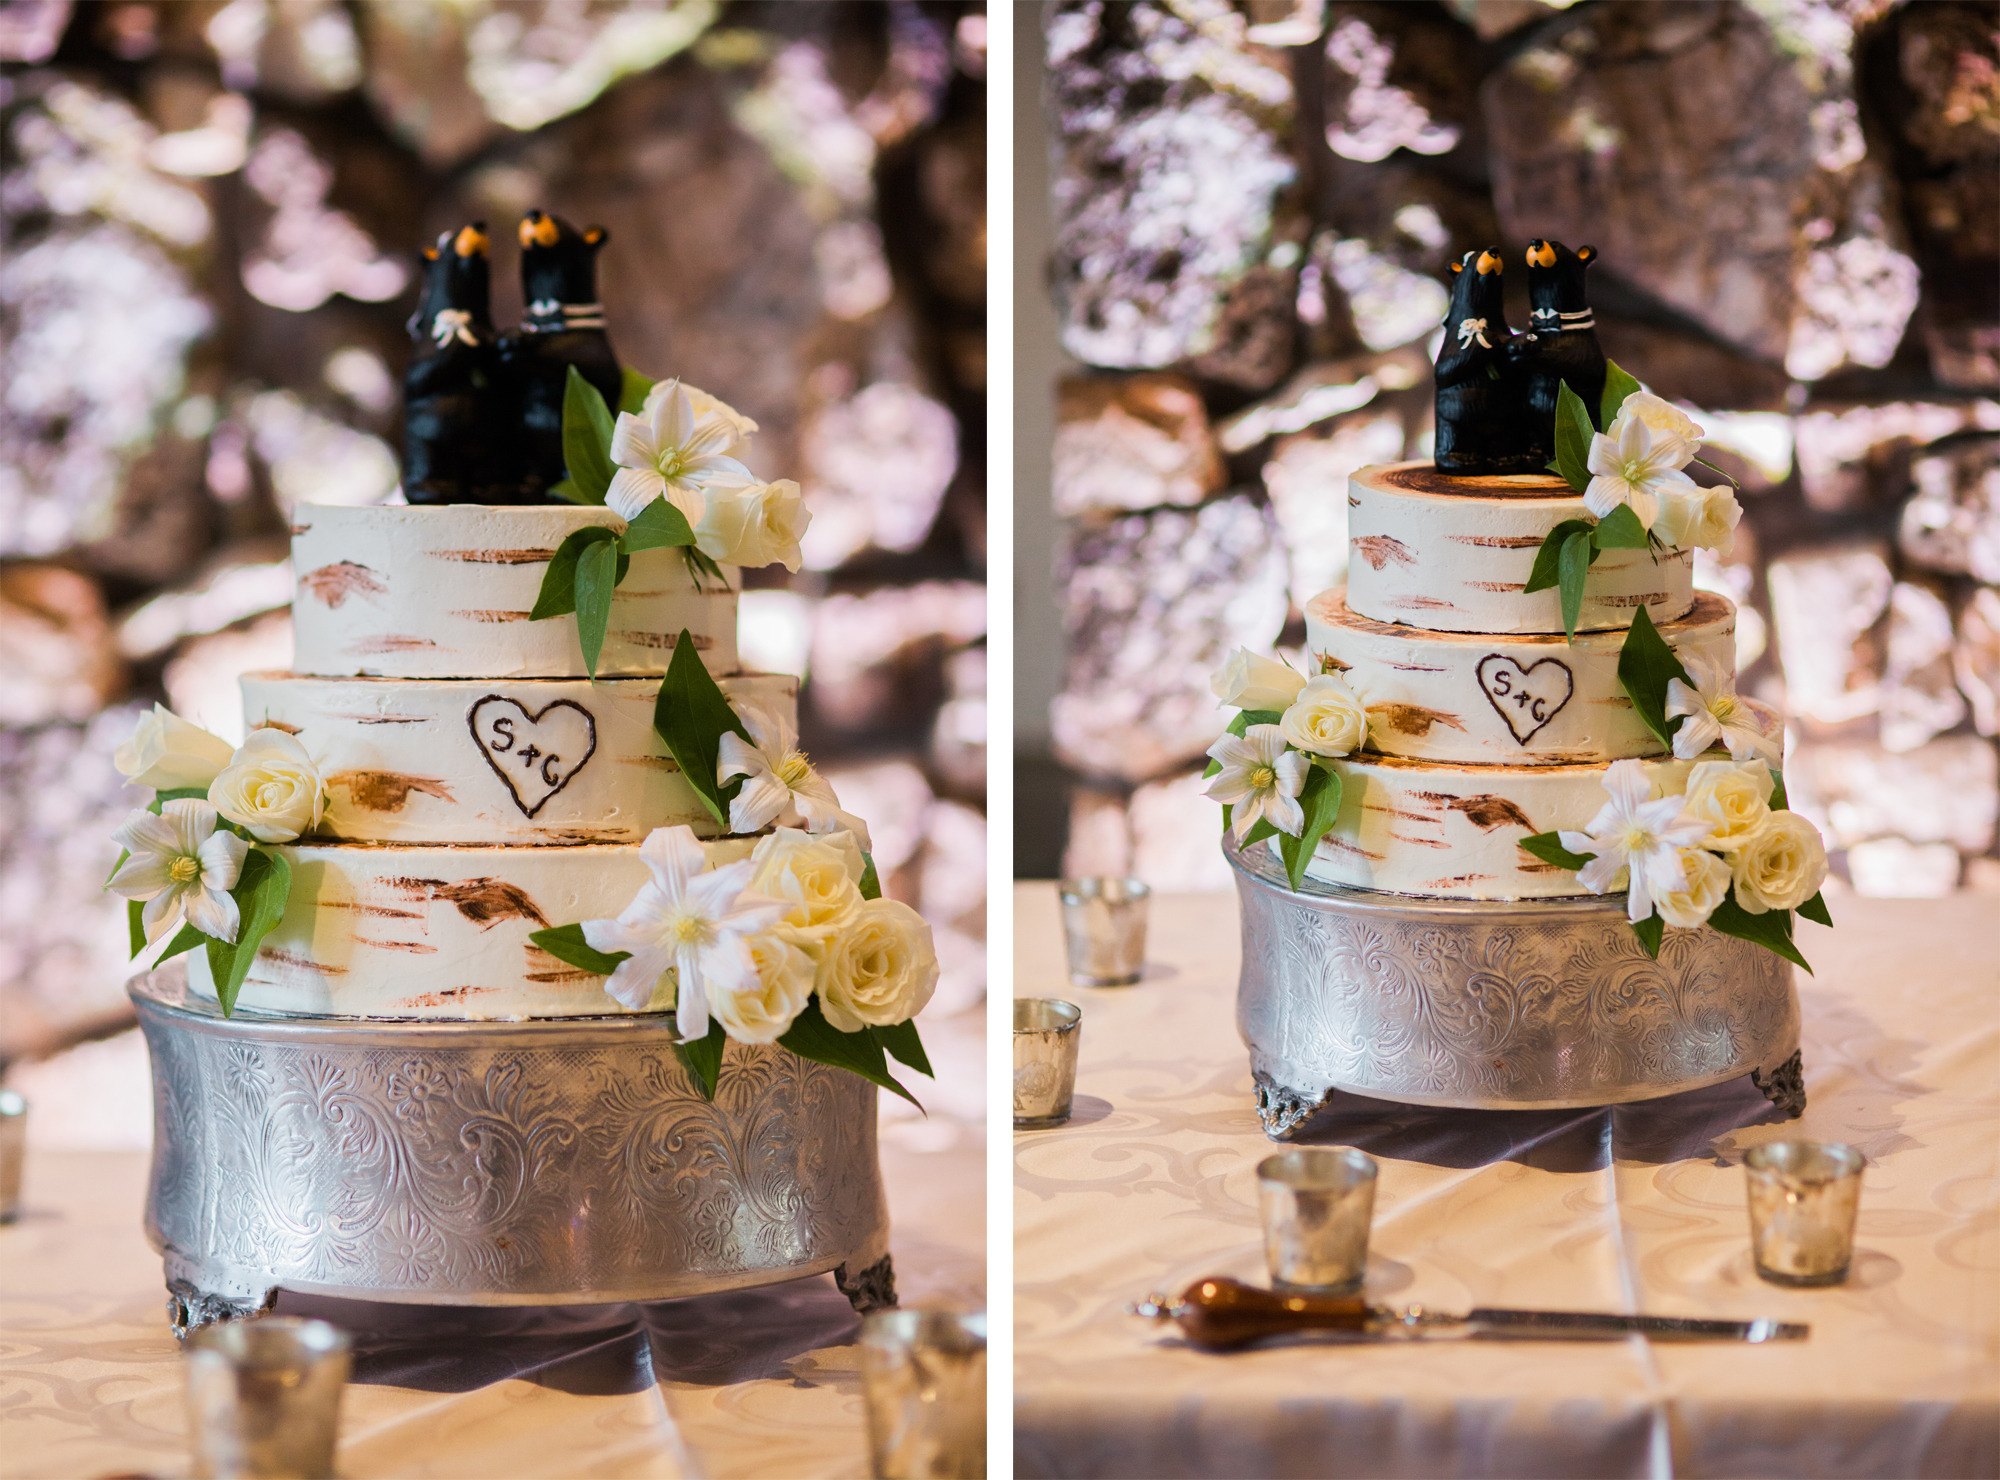 Bear themed wedding cake